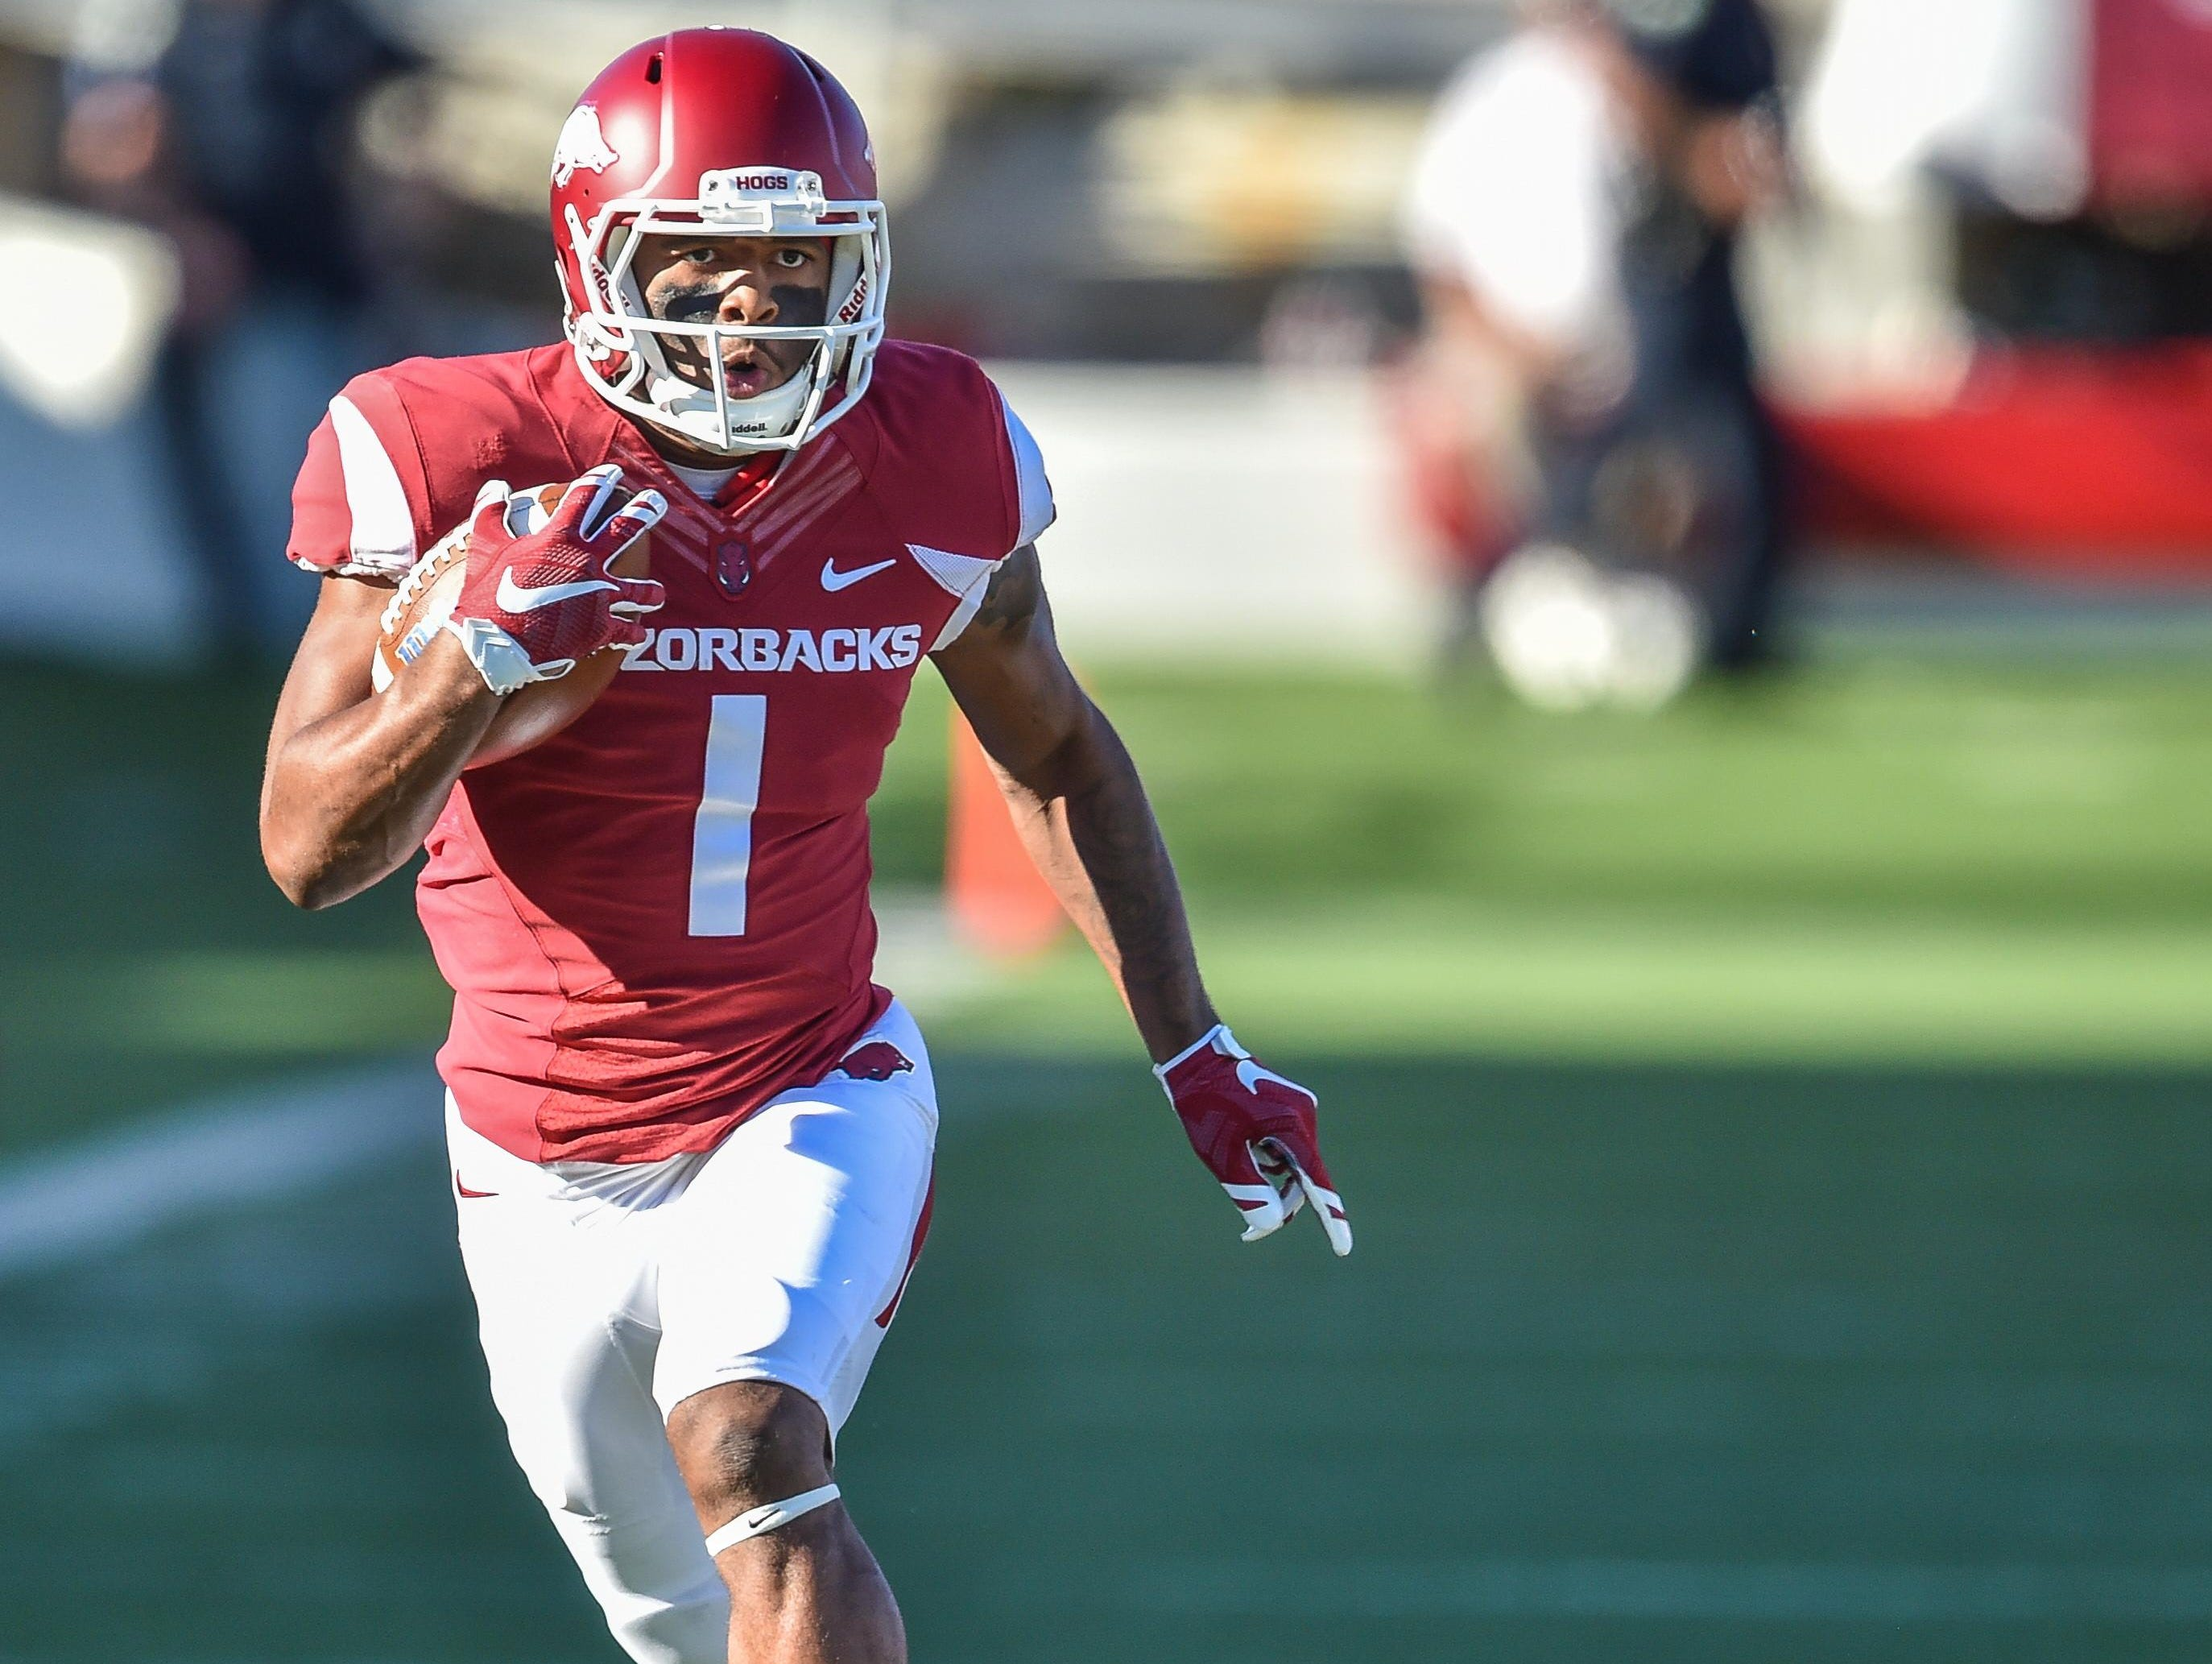 Jared Cornelius will see an increased role for Arkansas as he moves into the starting lineup following the injury to leading receiver Keon Hatcher.